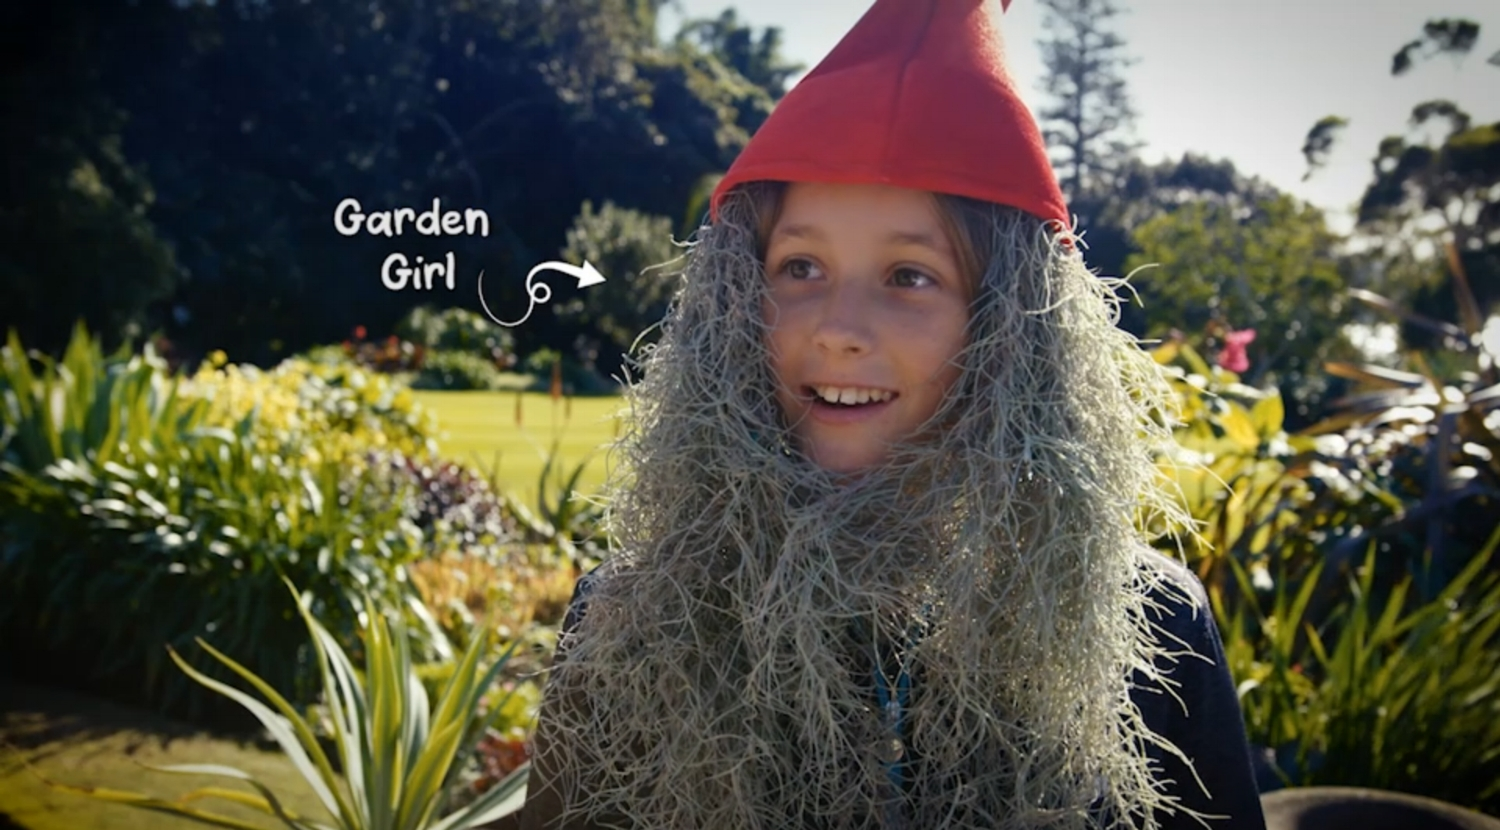 HOLIDAY - Garden Girl.jpg